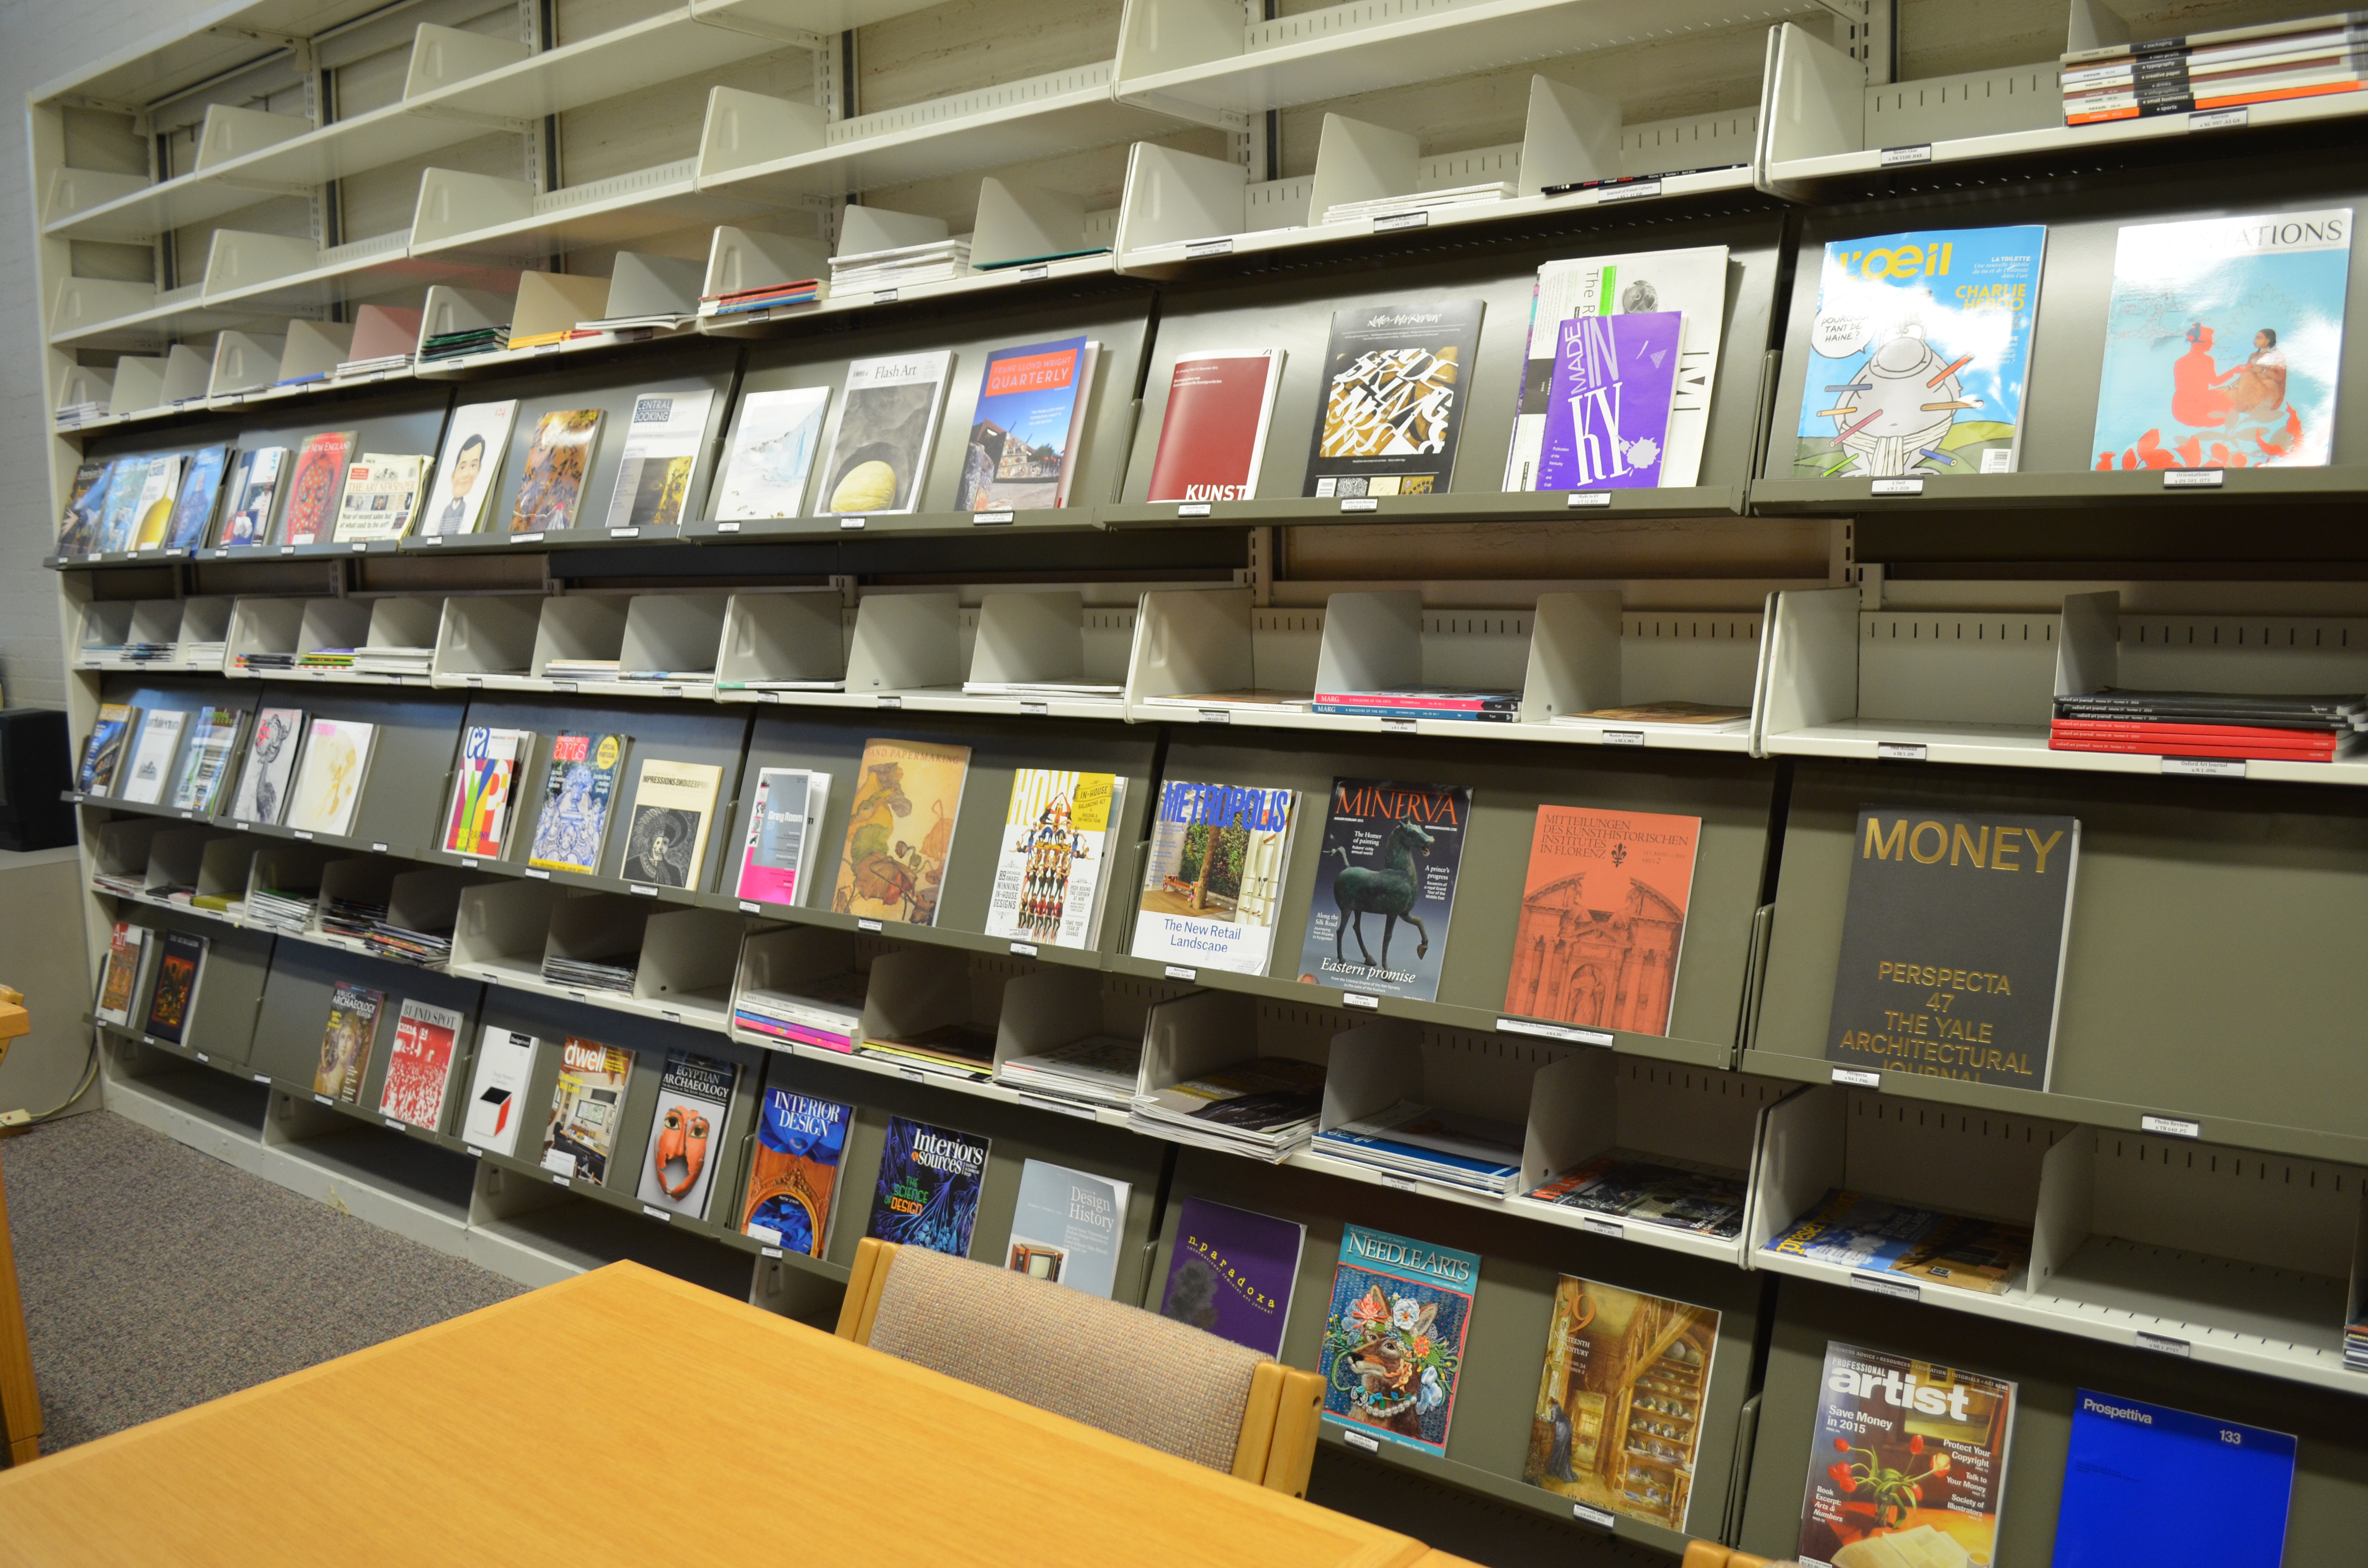 Rows of art periodicals on display